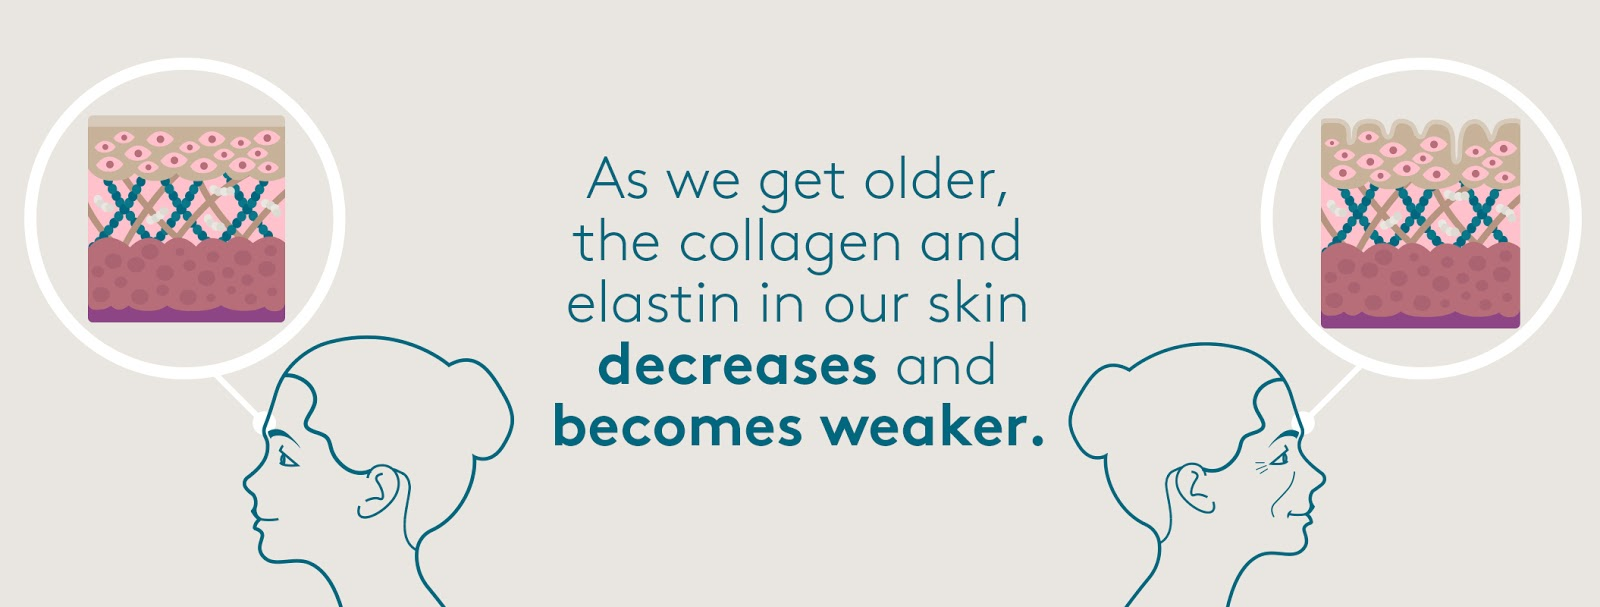 Collagen and elastin decreases in 30 year old skin